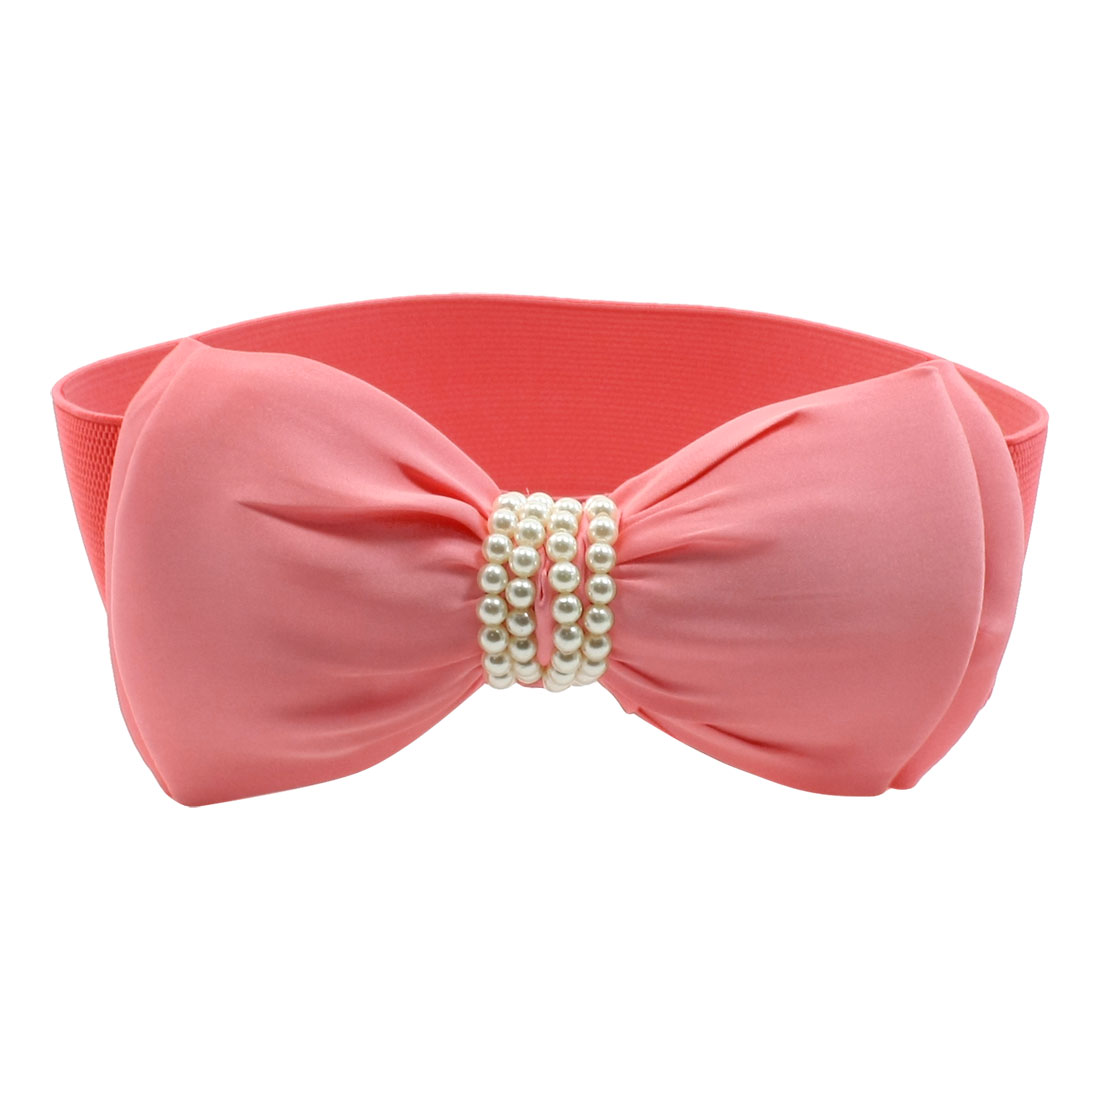 Press Button Bowknot Detail Salmon Pink Stretchy Waist Belt for Lady